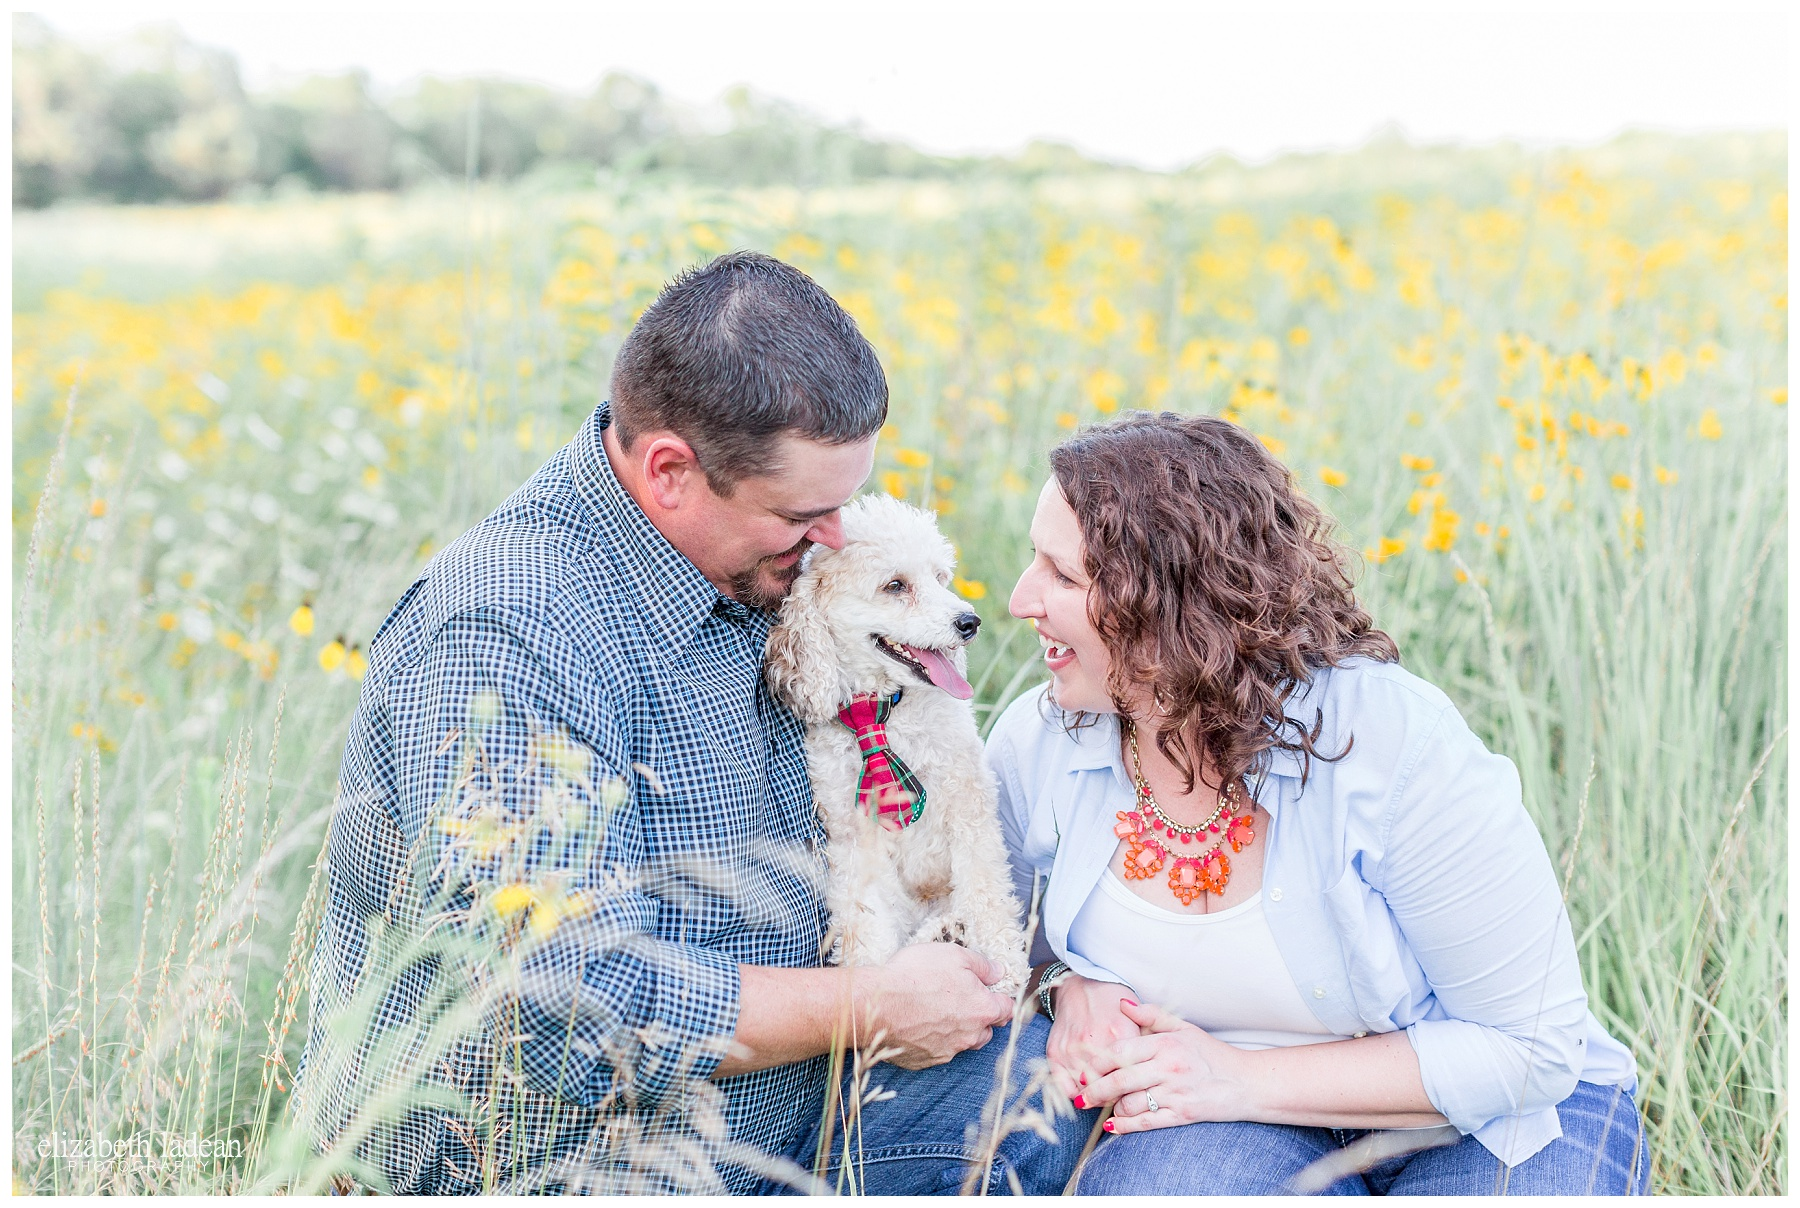 Kansas-City-Engagement-Photography-Shawnee-Mission-H+JJ2017-Elizabeth-Ladean-Photography-photo_1924.jpg